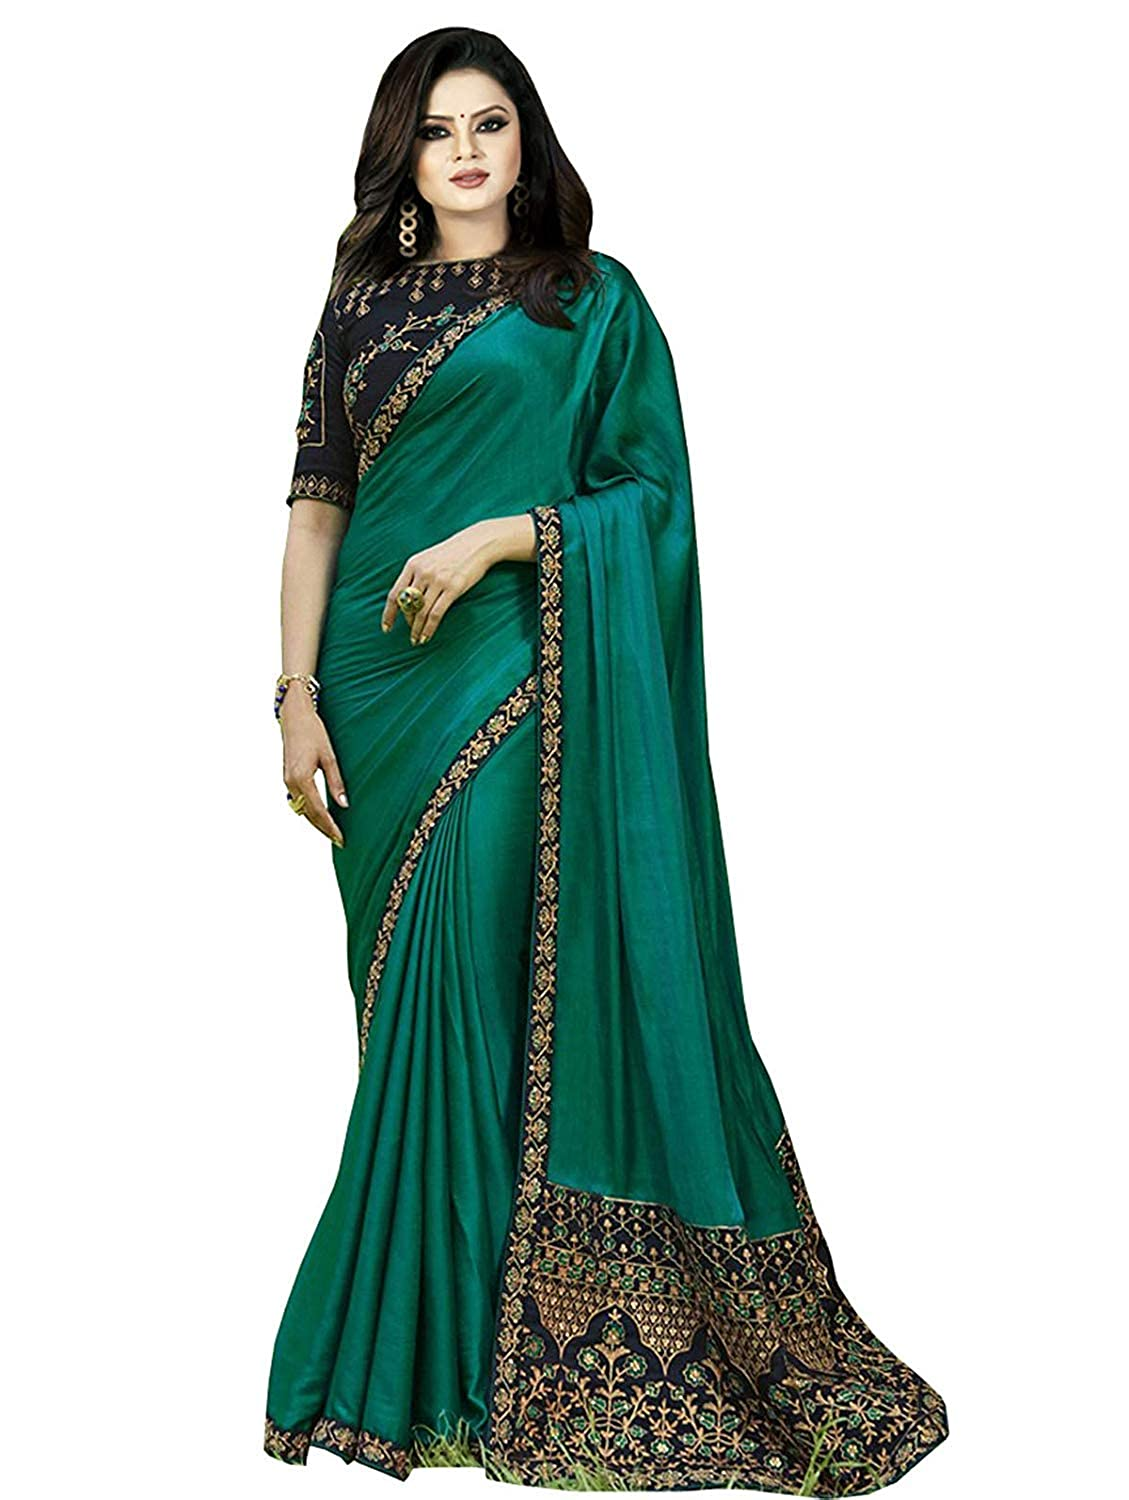 91d93d89d Jesti Designer Green Embroidery Georgette Saree  Amazon.in  Clothing    Accessories